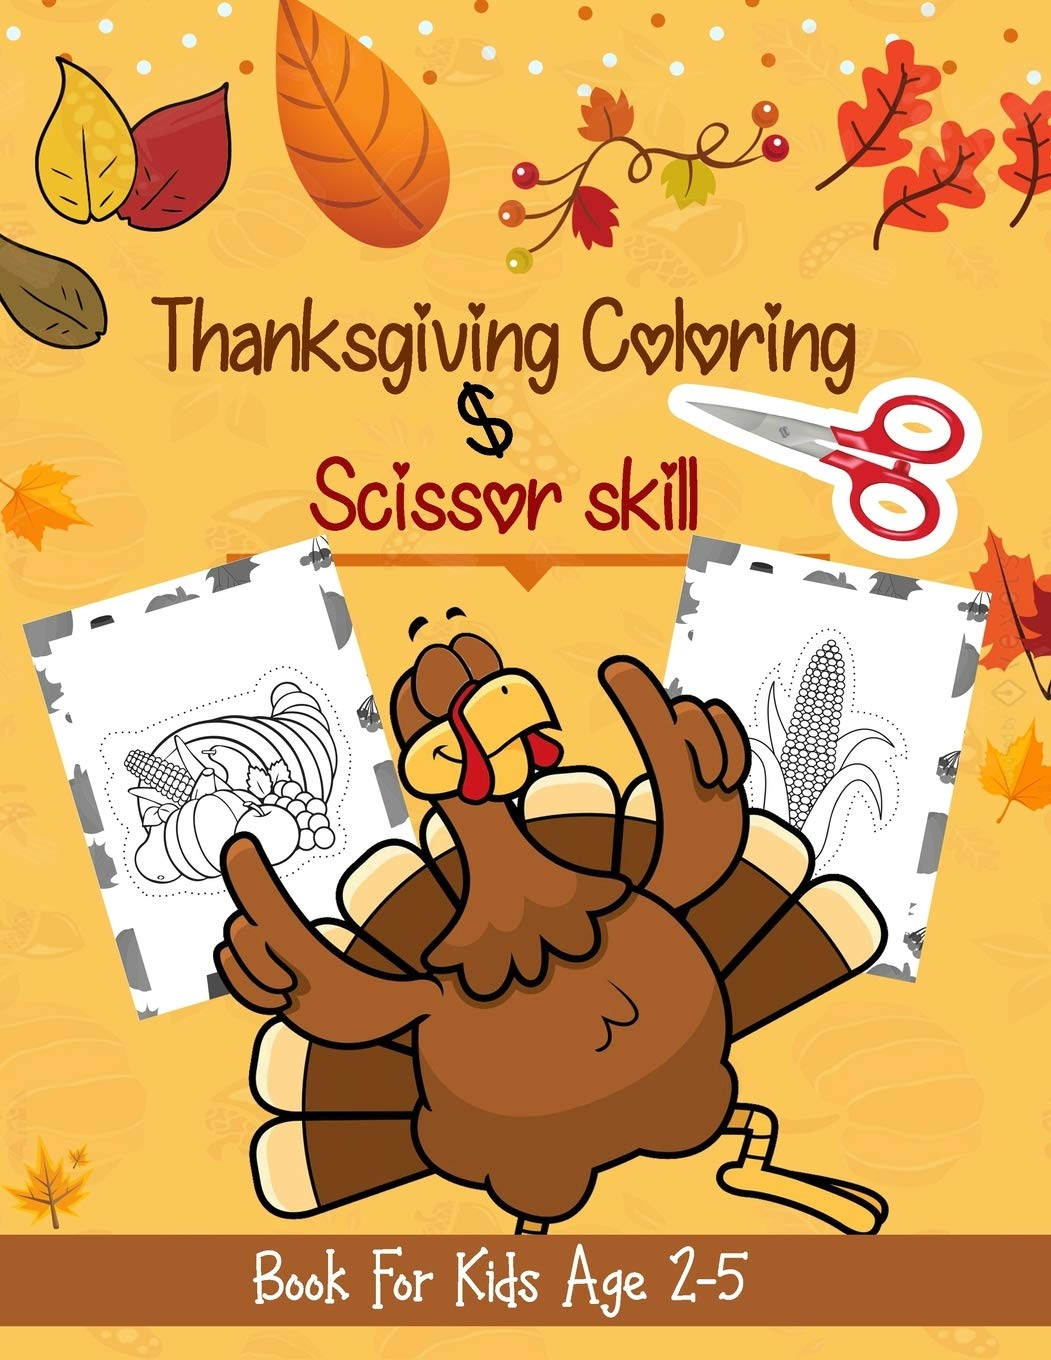 Thanksgiving Coloring & Scissor Skill Book For Kids Age 2-5: Funny Thanksgiving Gift And Scissor Skills Cut & Paste Activity Book For Kids, Toddlers ... (Excellent Thanksgiving Gift For Kids)